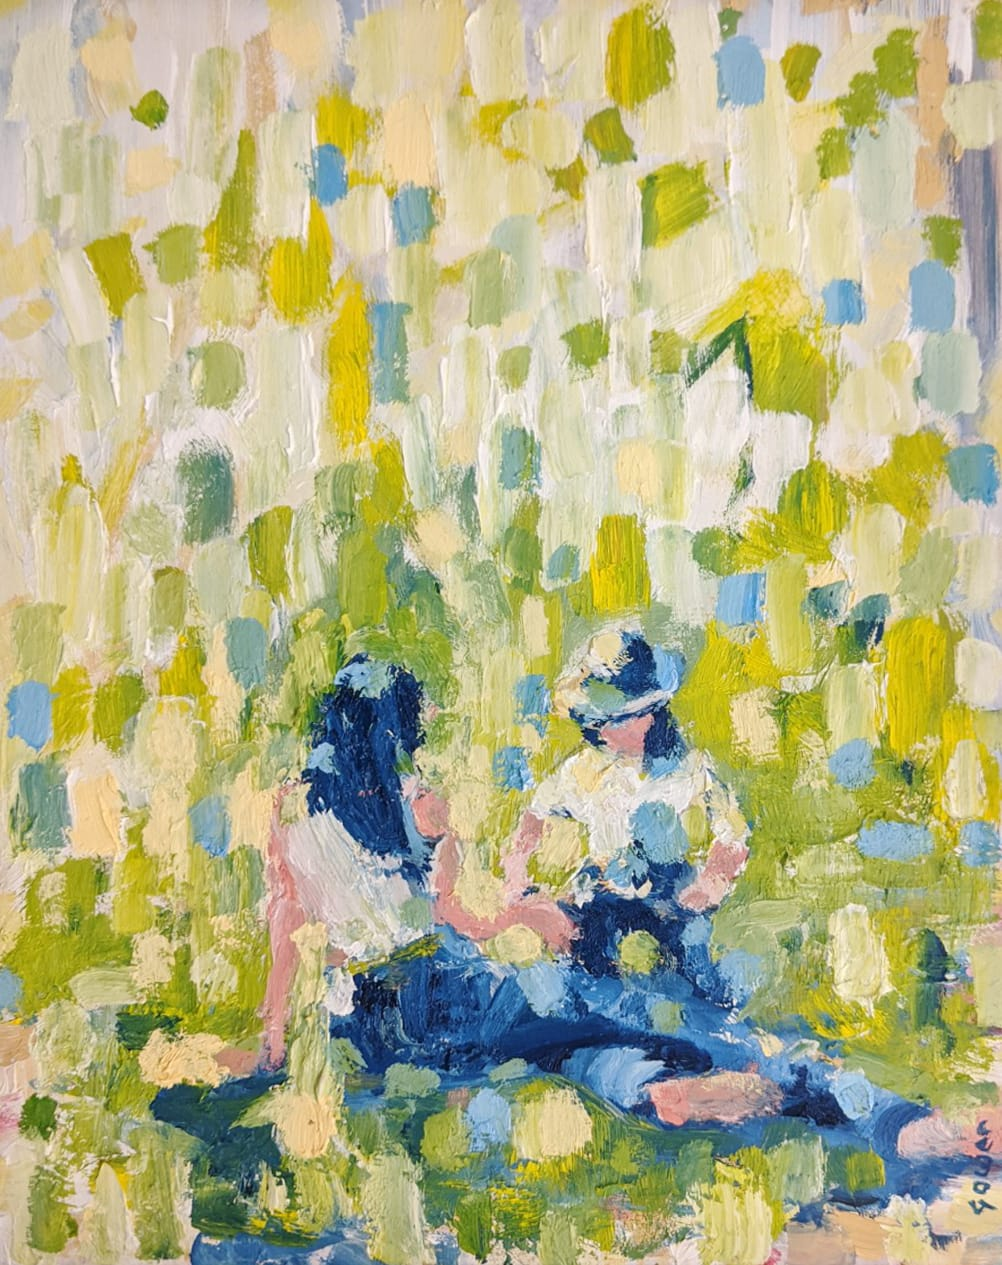 RICHARD GOWER, Park Picnic